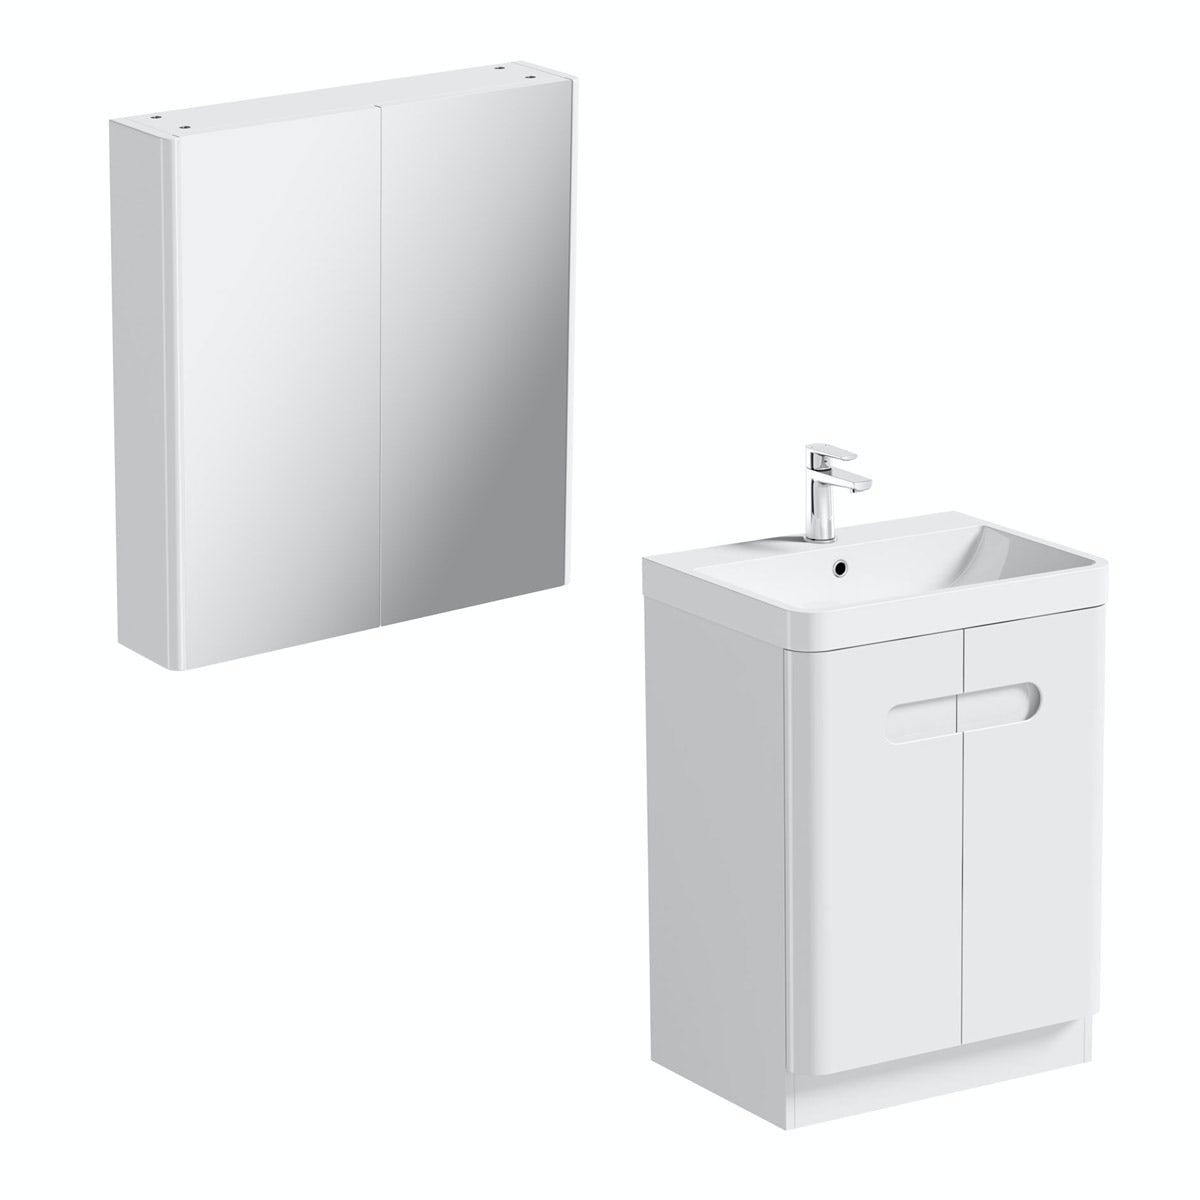 mirror bathroom cabinets offers mode ellis white vanity door unit 600mm and mirror cabinet 19465